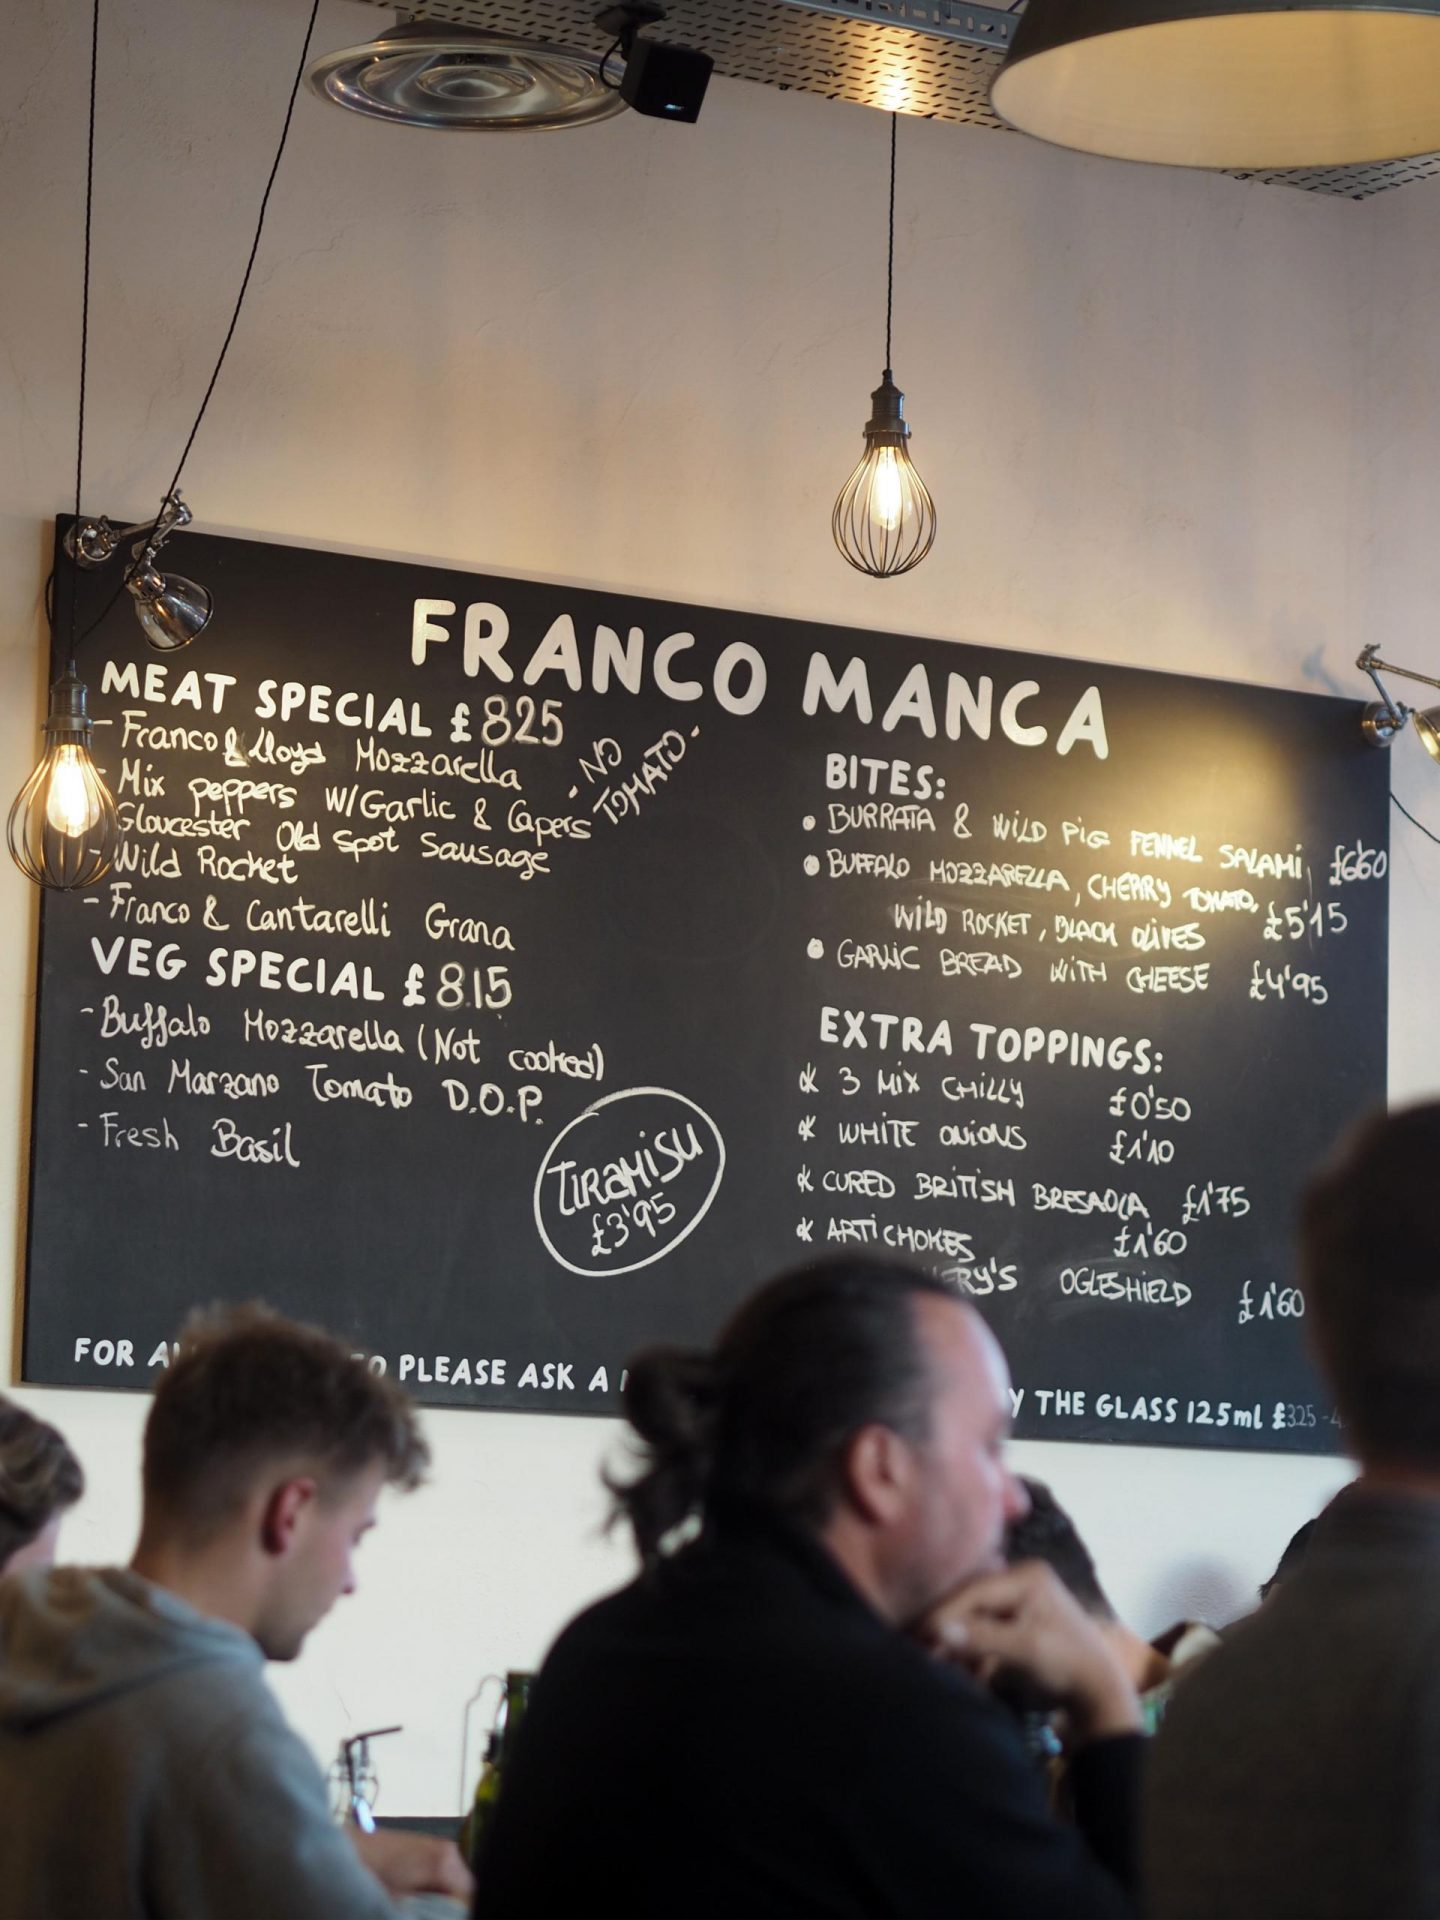 Franco Manca, Brighton Marina - The Best Pizza?